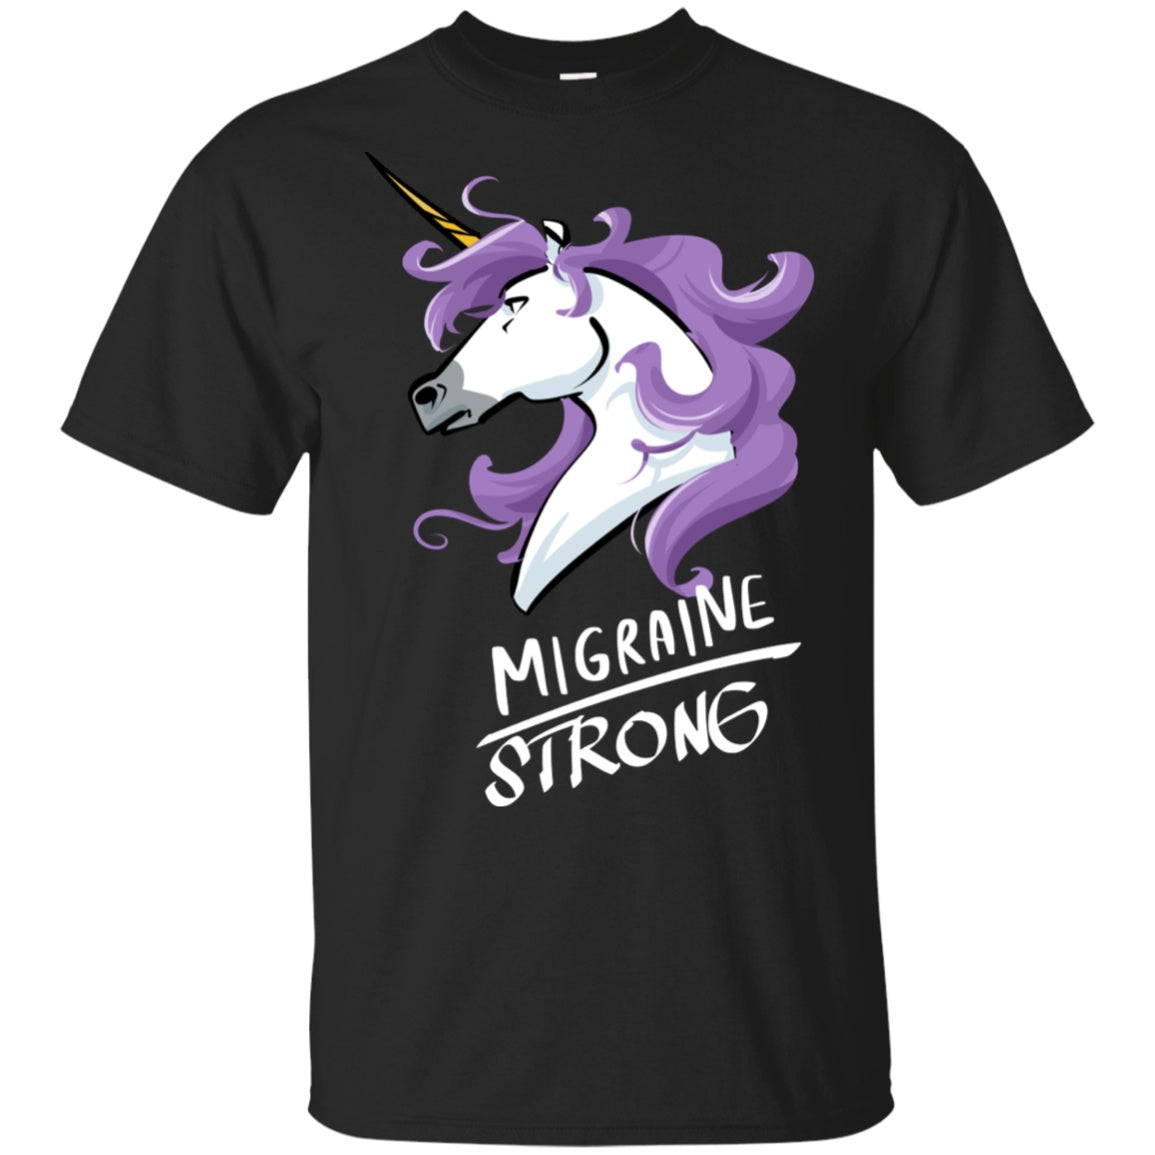 Migraine Strong Unicorn Cotton Unisex T-Shirt - The Unchargeables